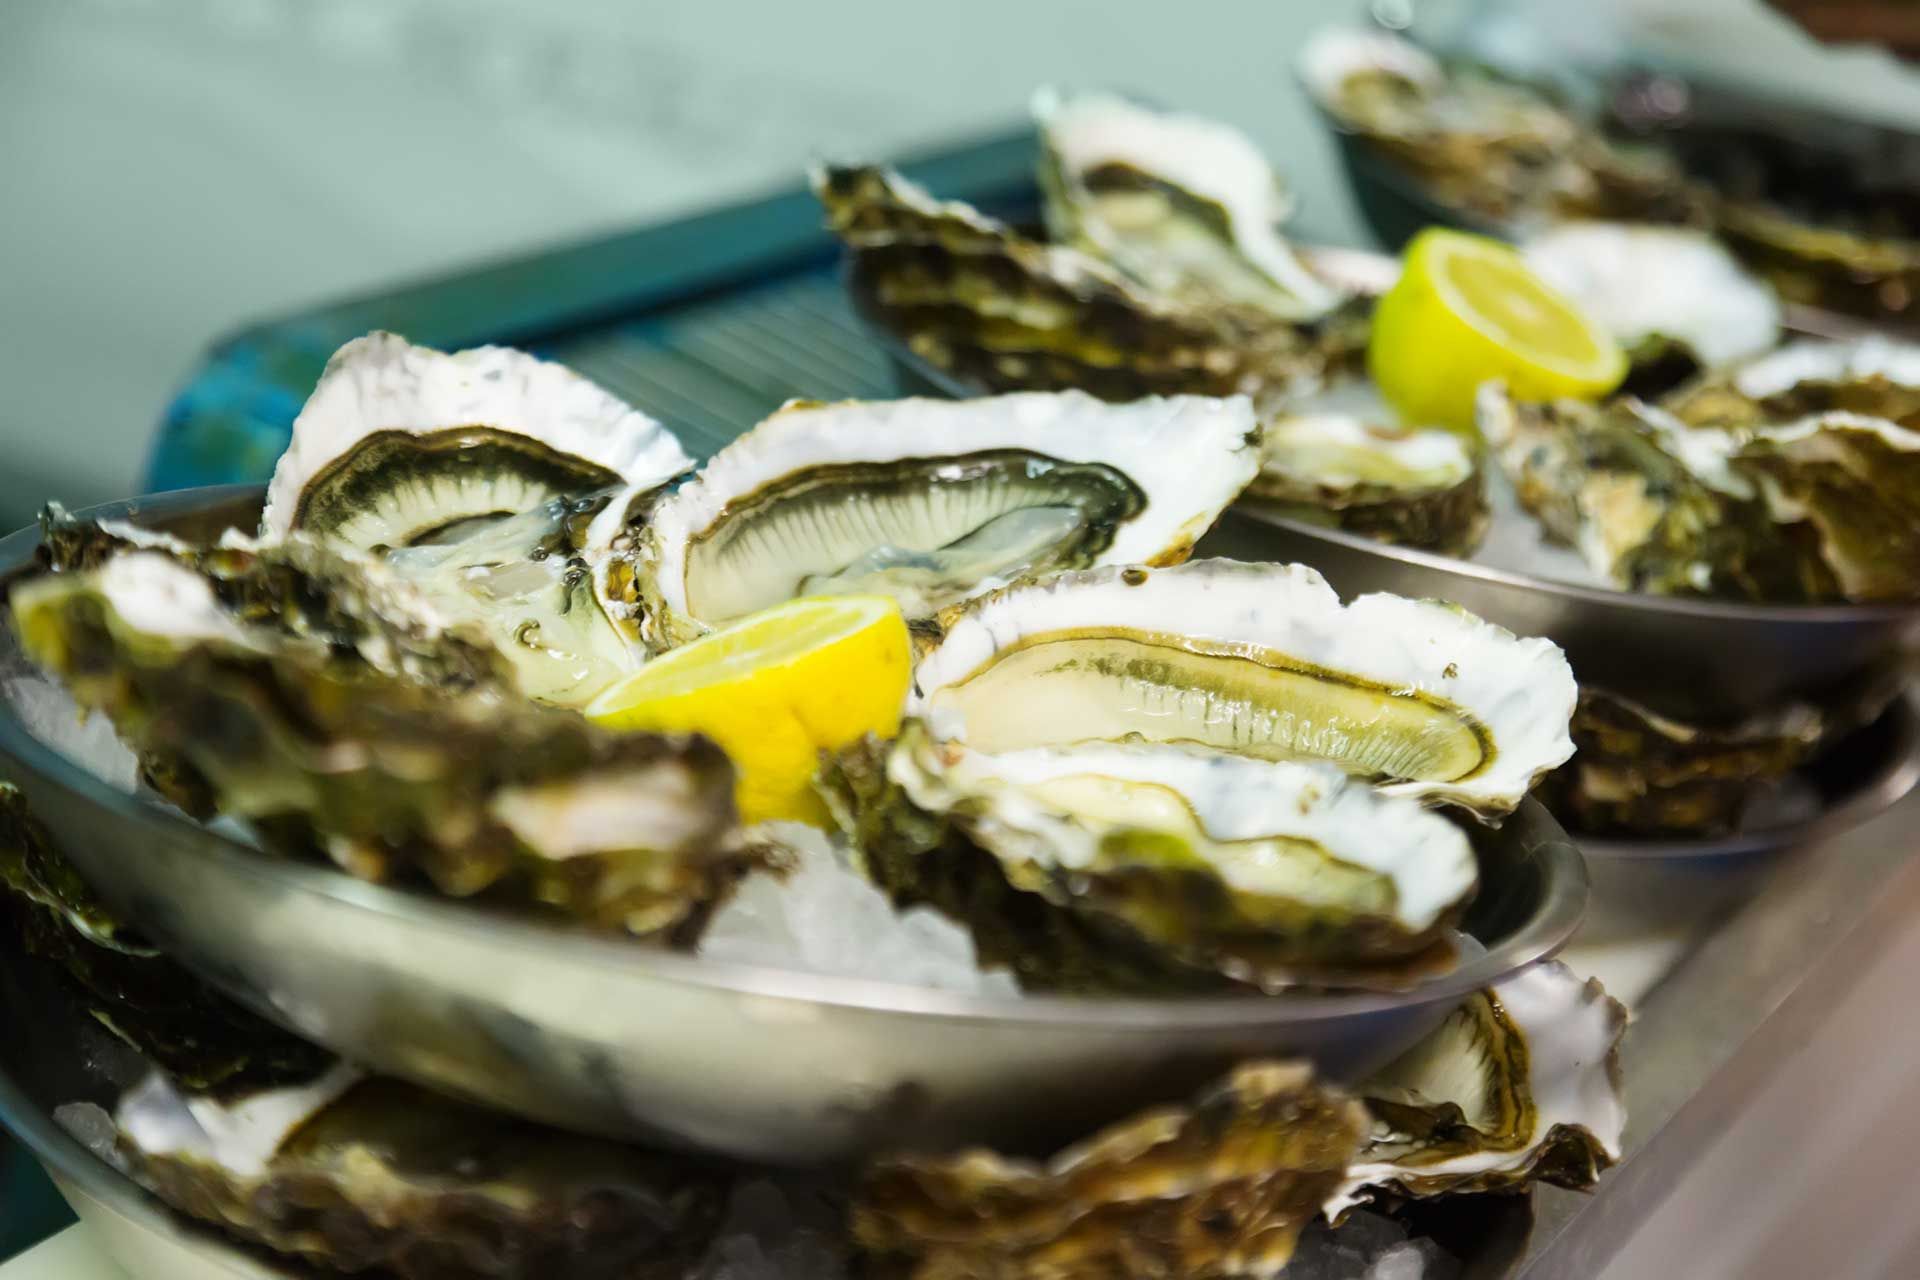 Oysters with lemon on plates at  oyster farm